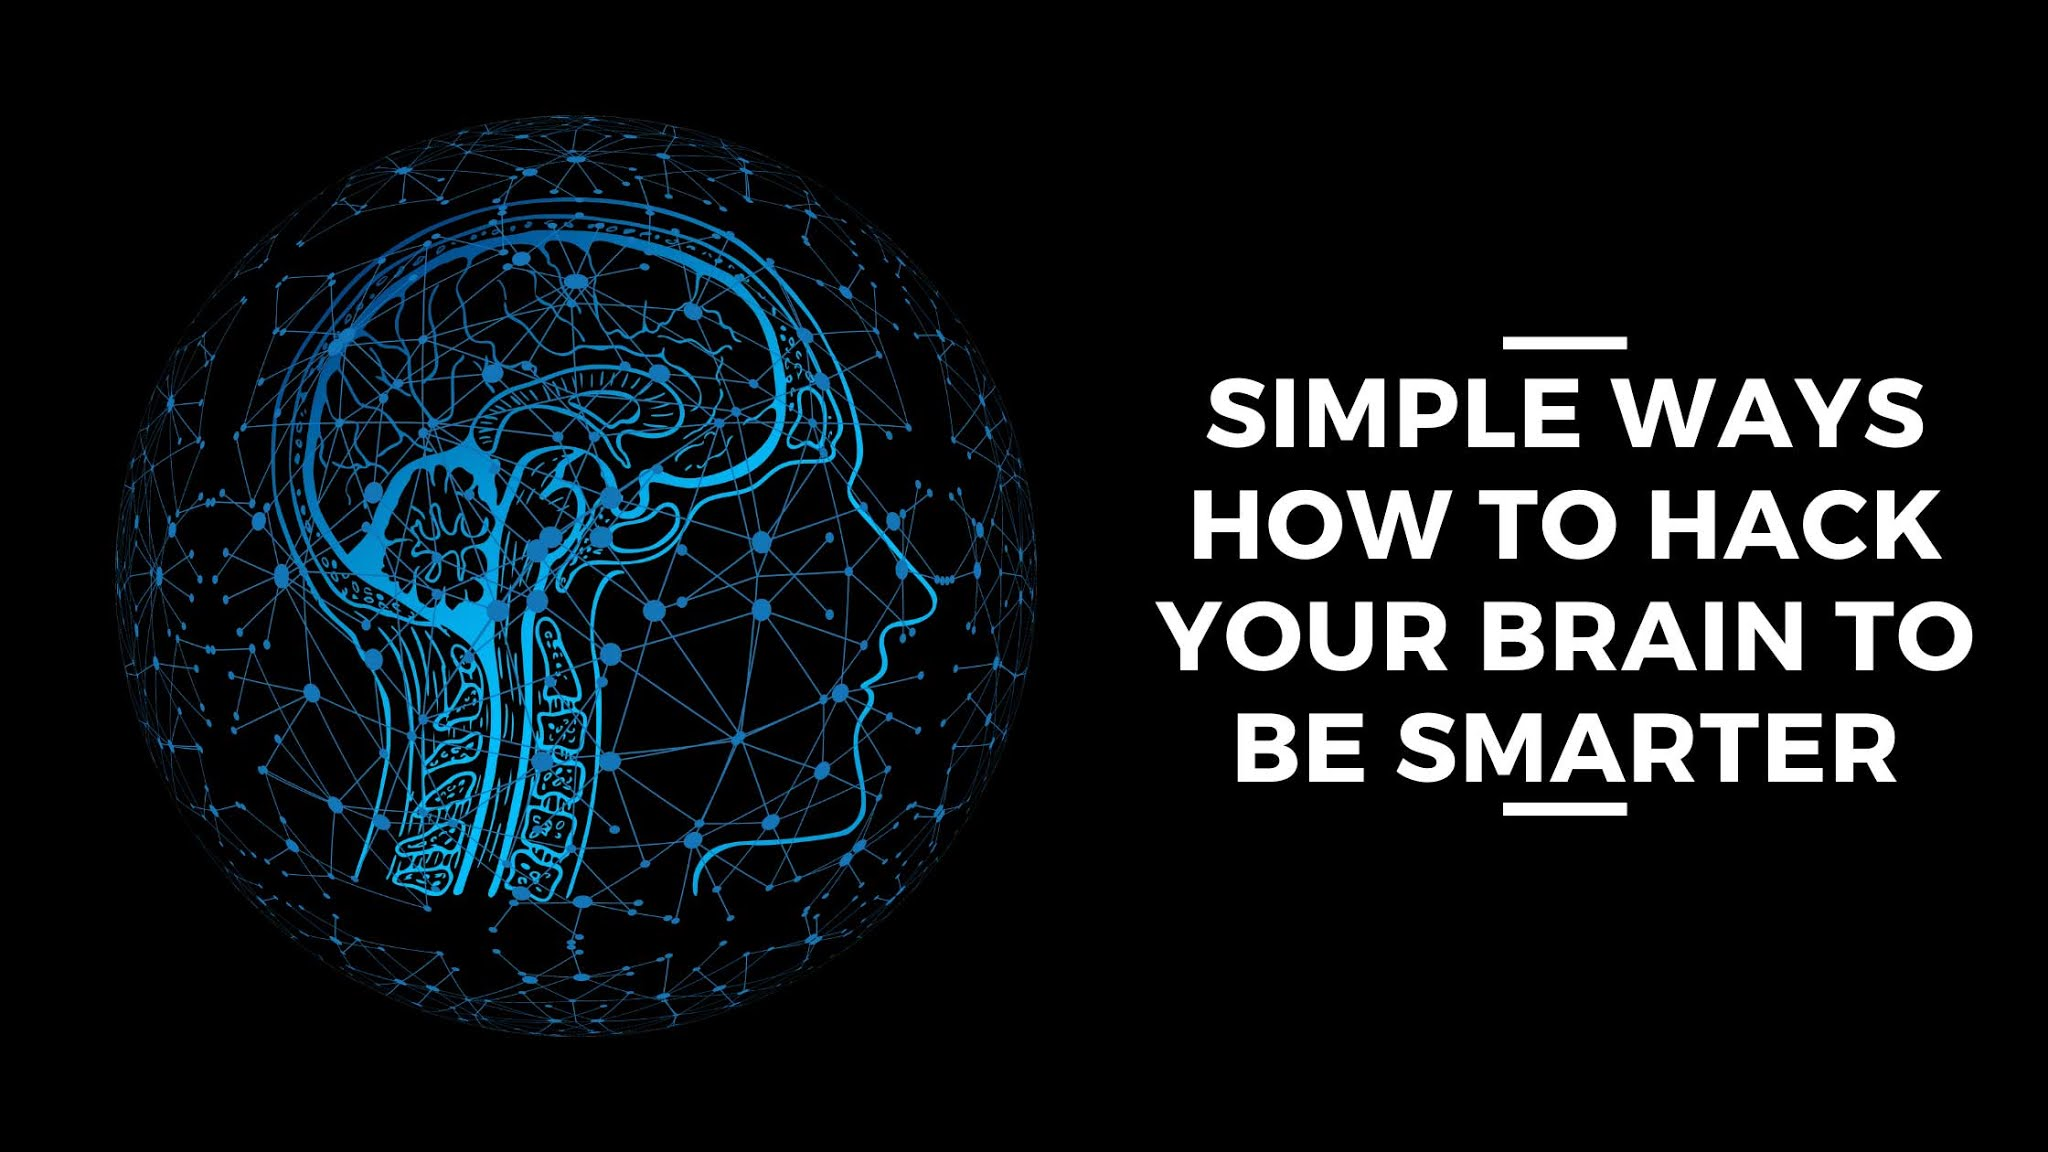 10 Simple Ways How To Hack Your Brain To Be Smarter